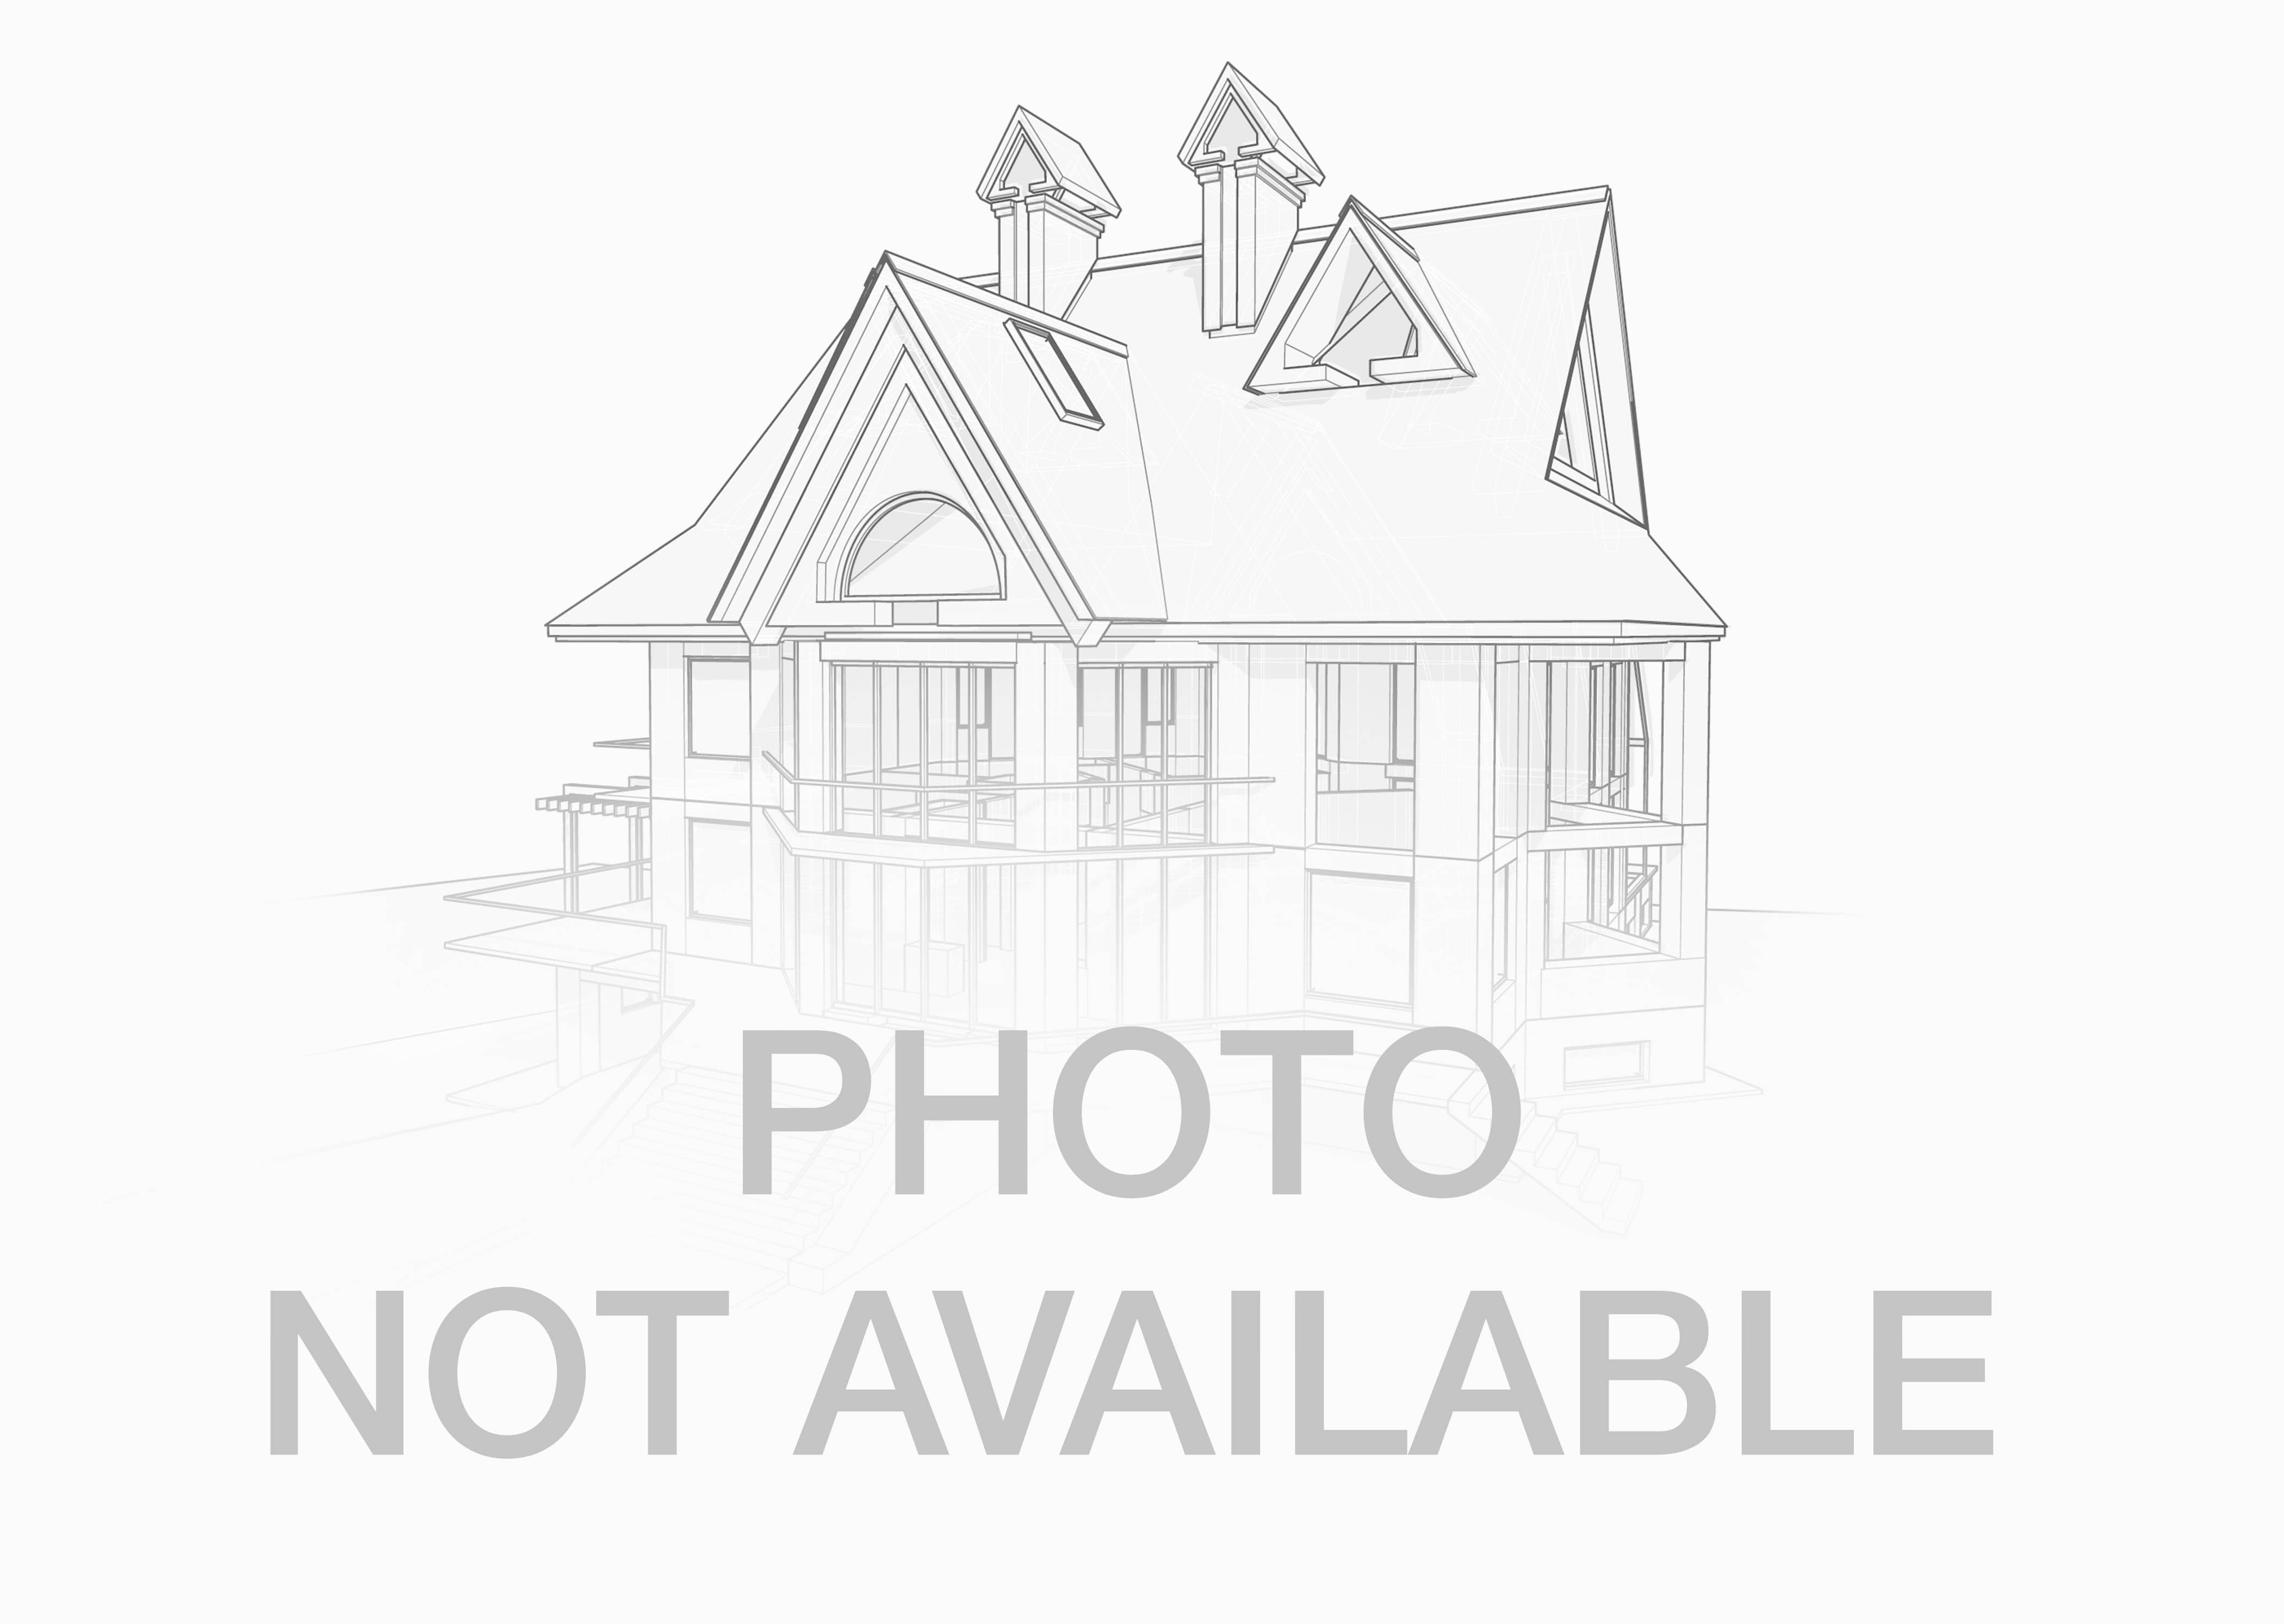 Bryant and Benton Arkansas Homes for Sale | Baxley-Penfield